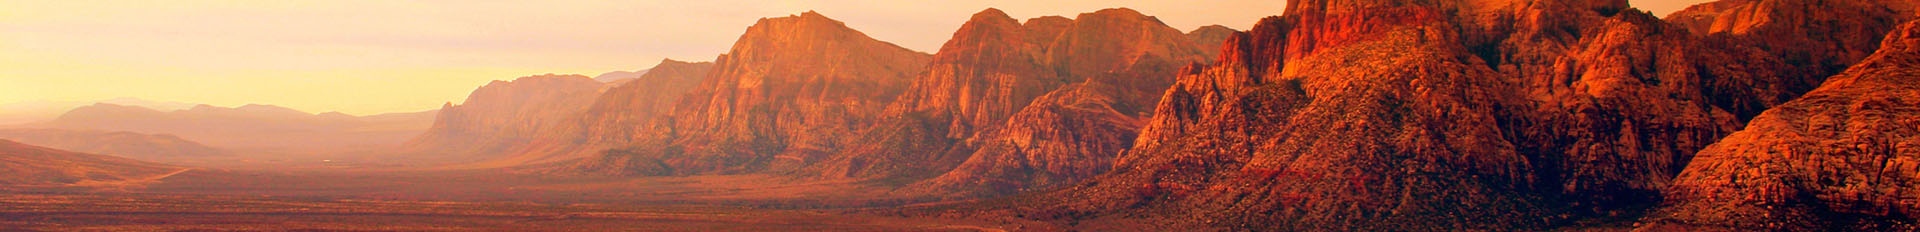 About Us | Serenity Funeral Home of Southern Utah